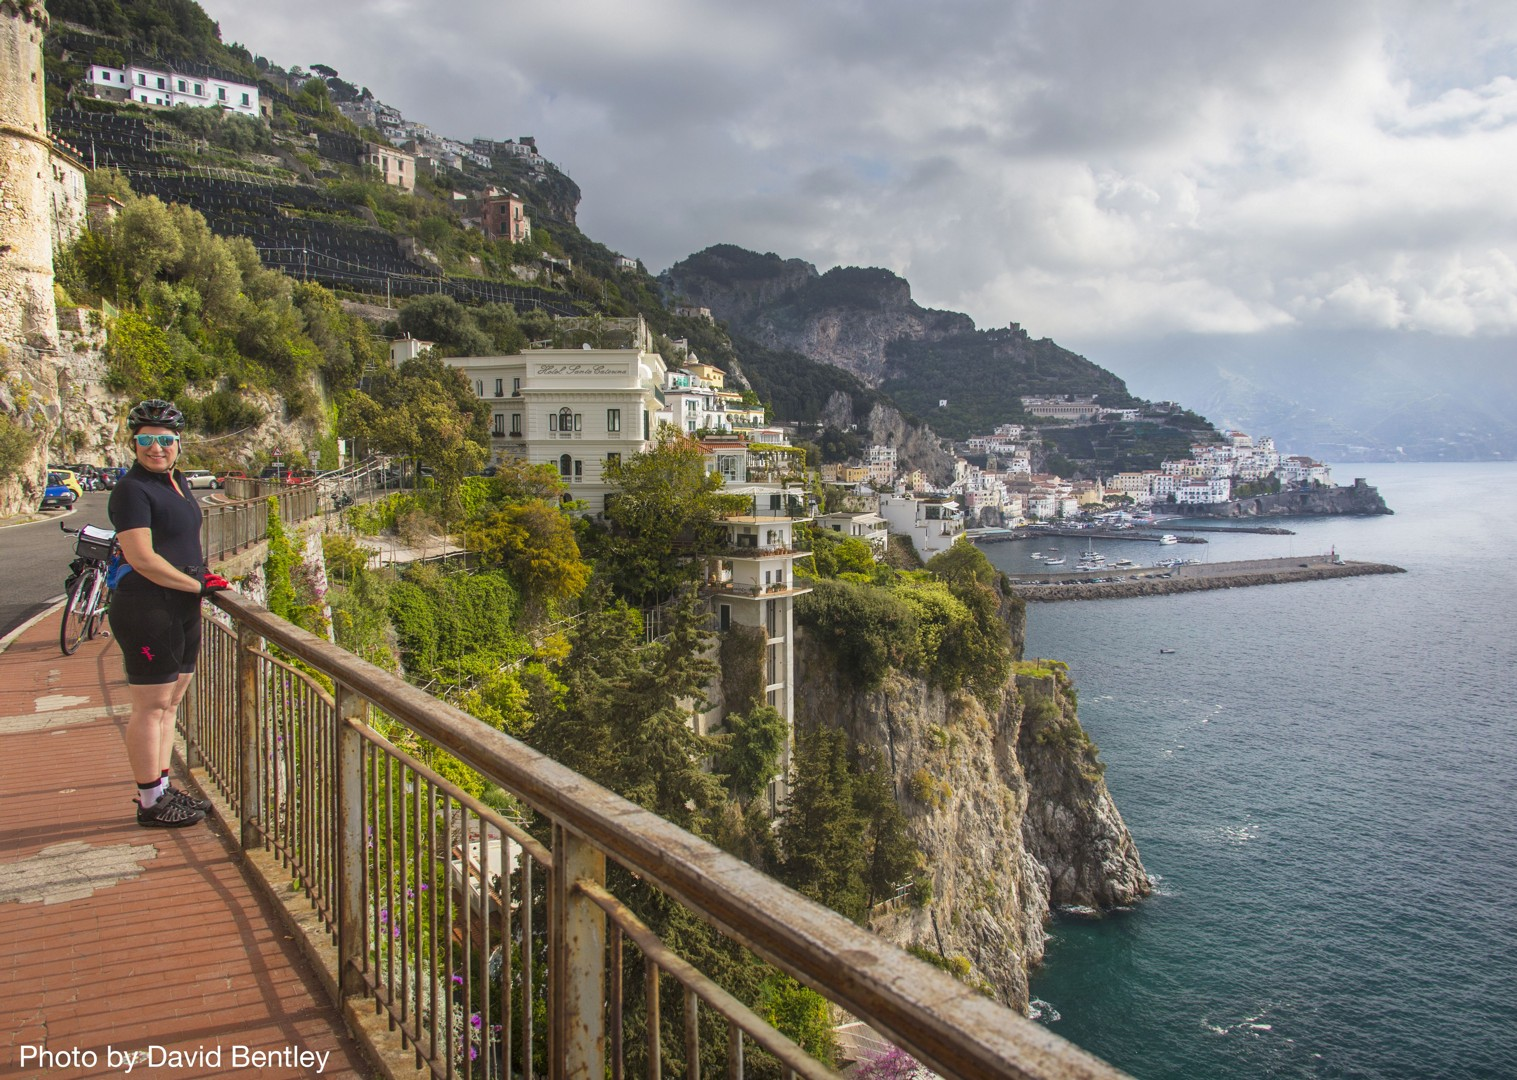 self-guided-cycling-holiday-in-italy-amalfi-coast-and-cilento-coastal.jpg - Italy - Cilento and The Amalfi Coast - Self-Guided Leisure Cycling Holiday - Leisure Cycling